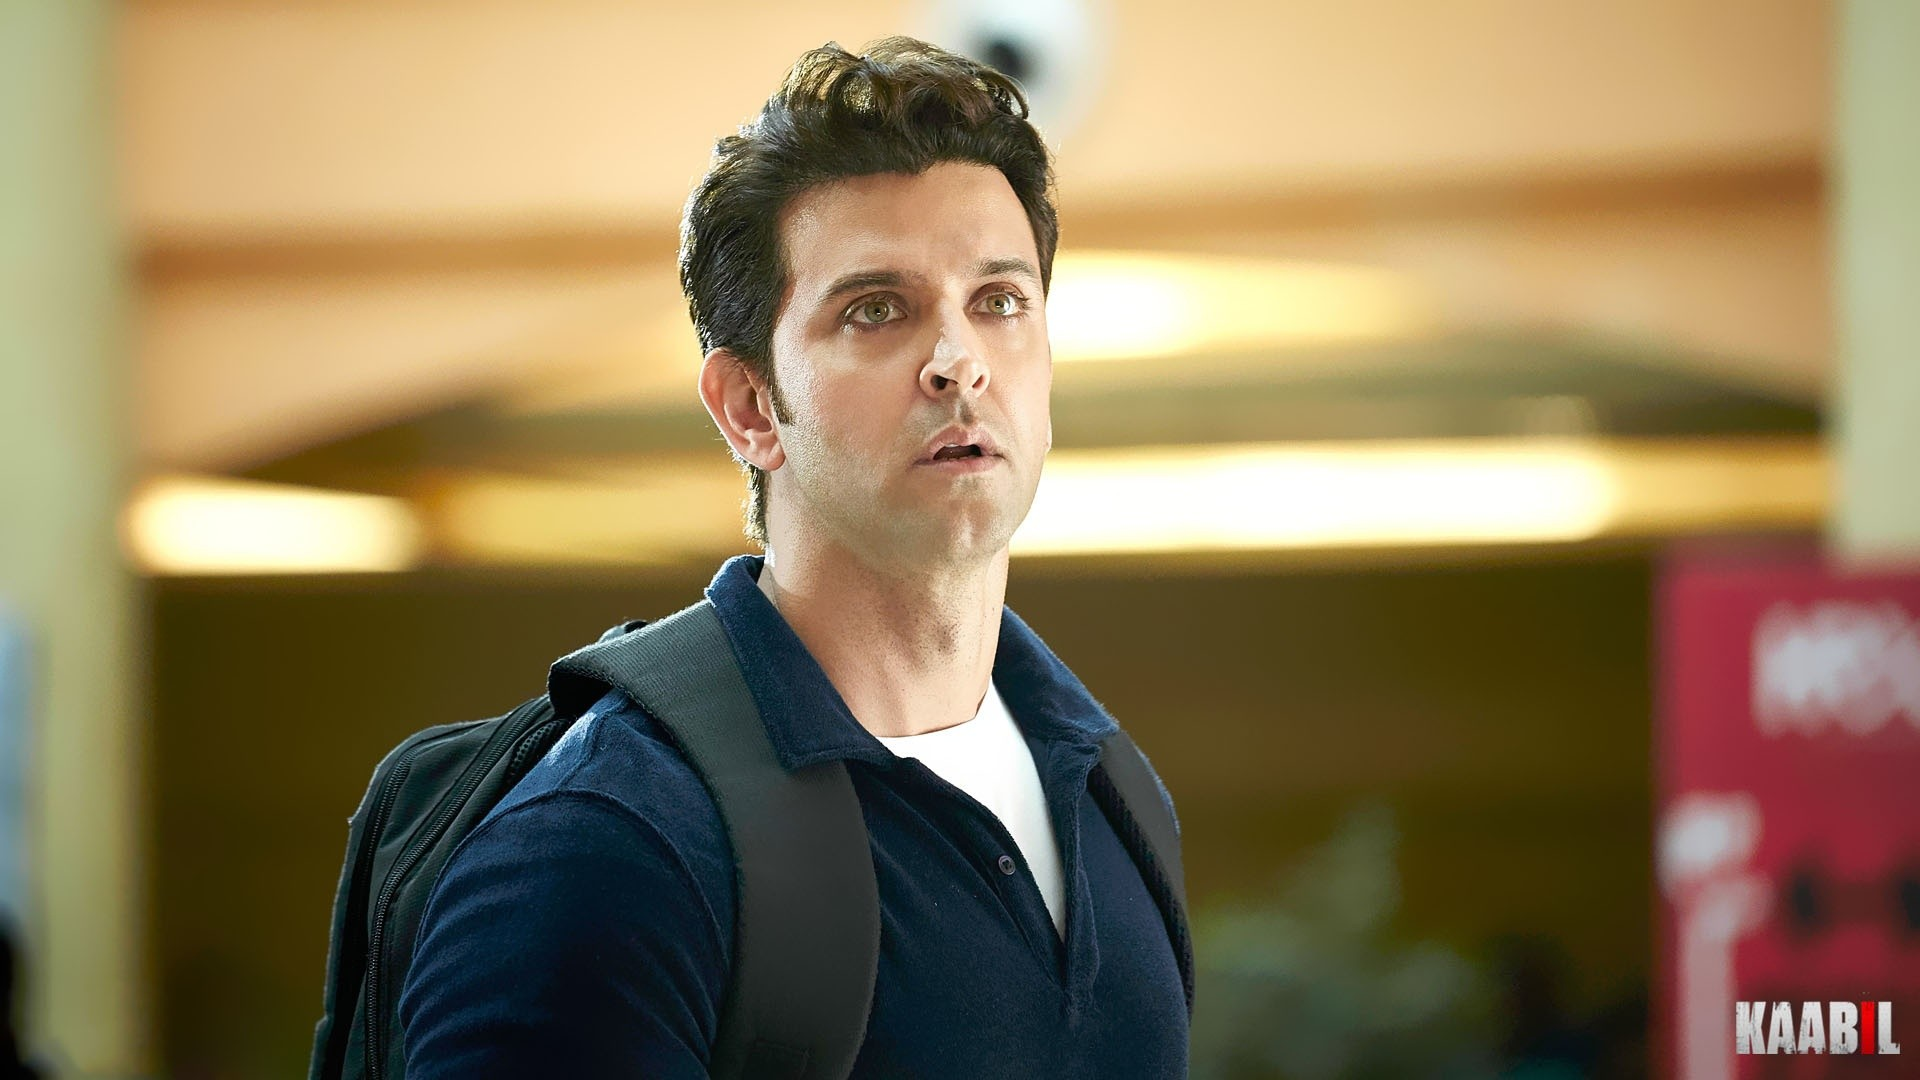 hrithik roshan in kaabil wallpaper background